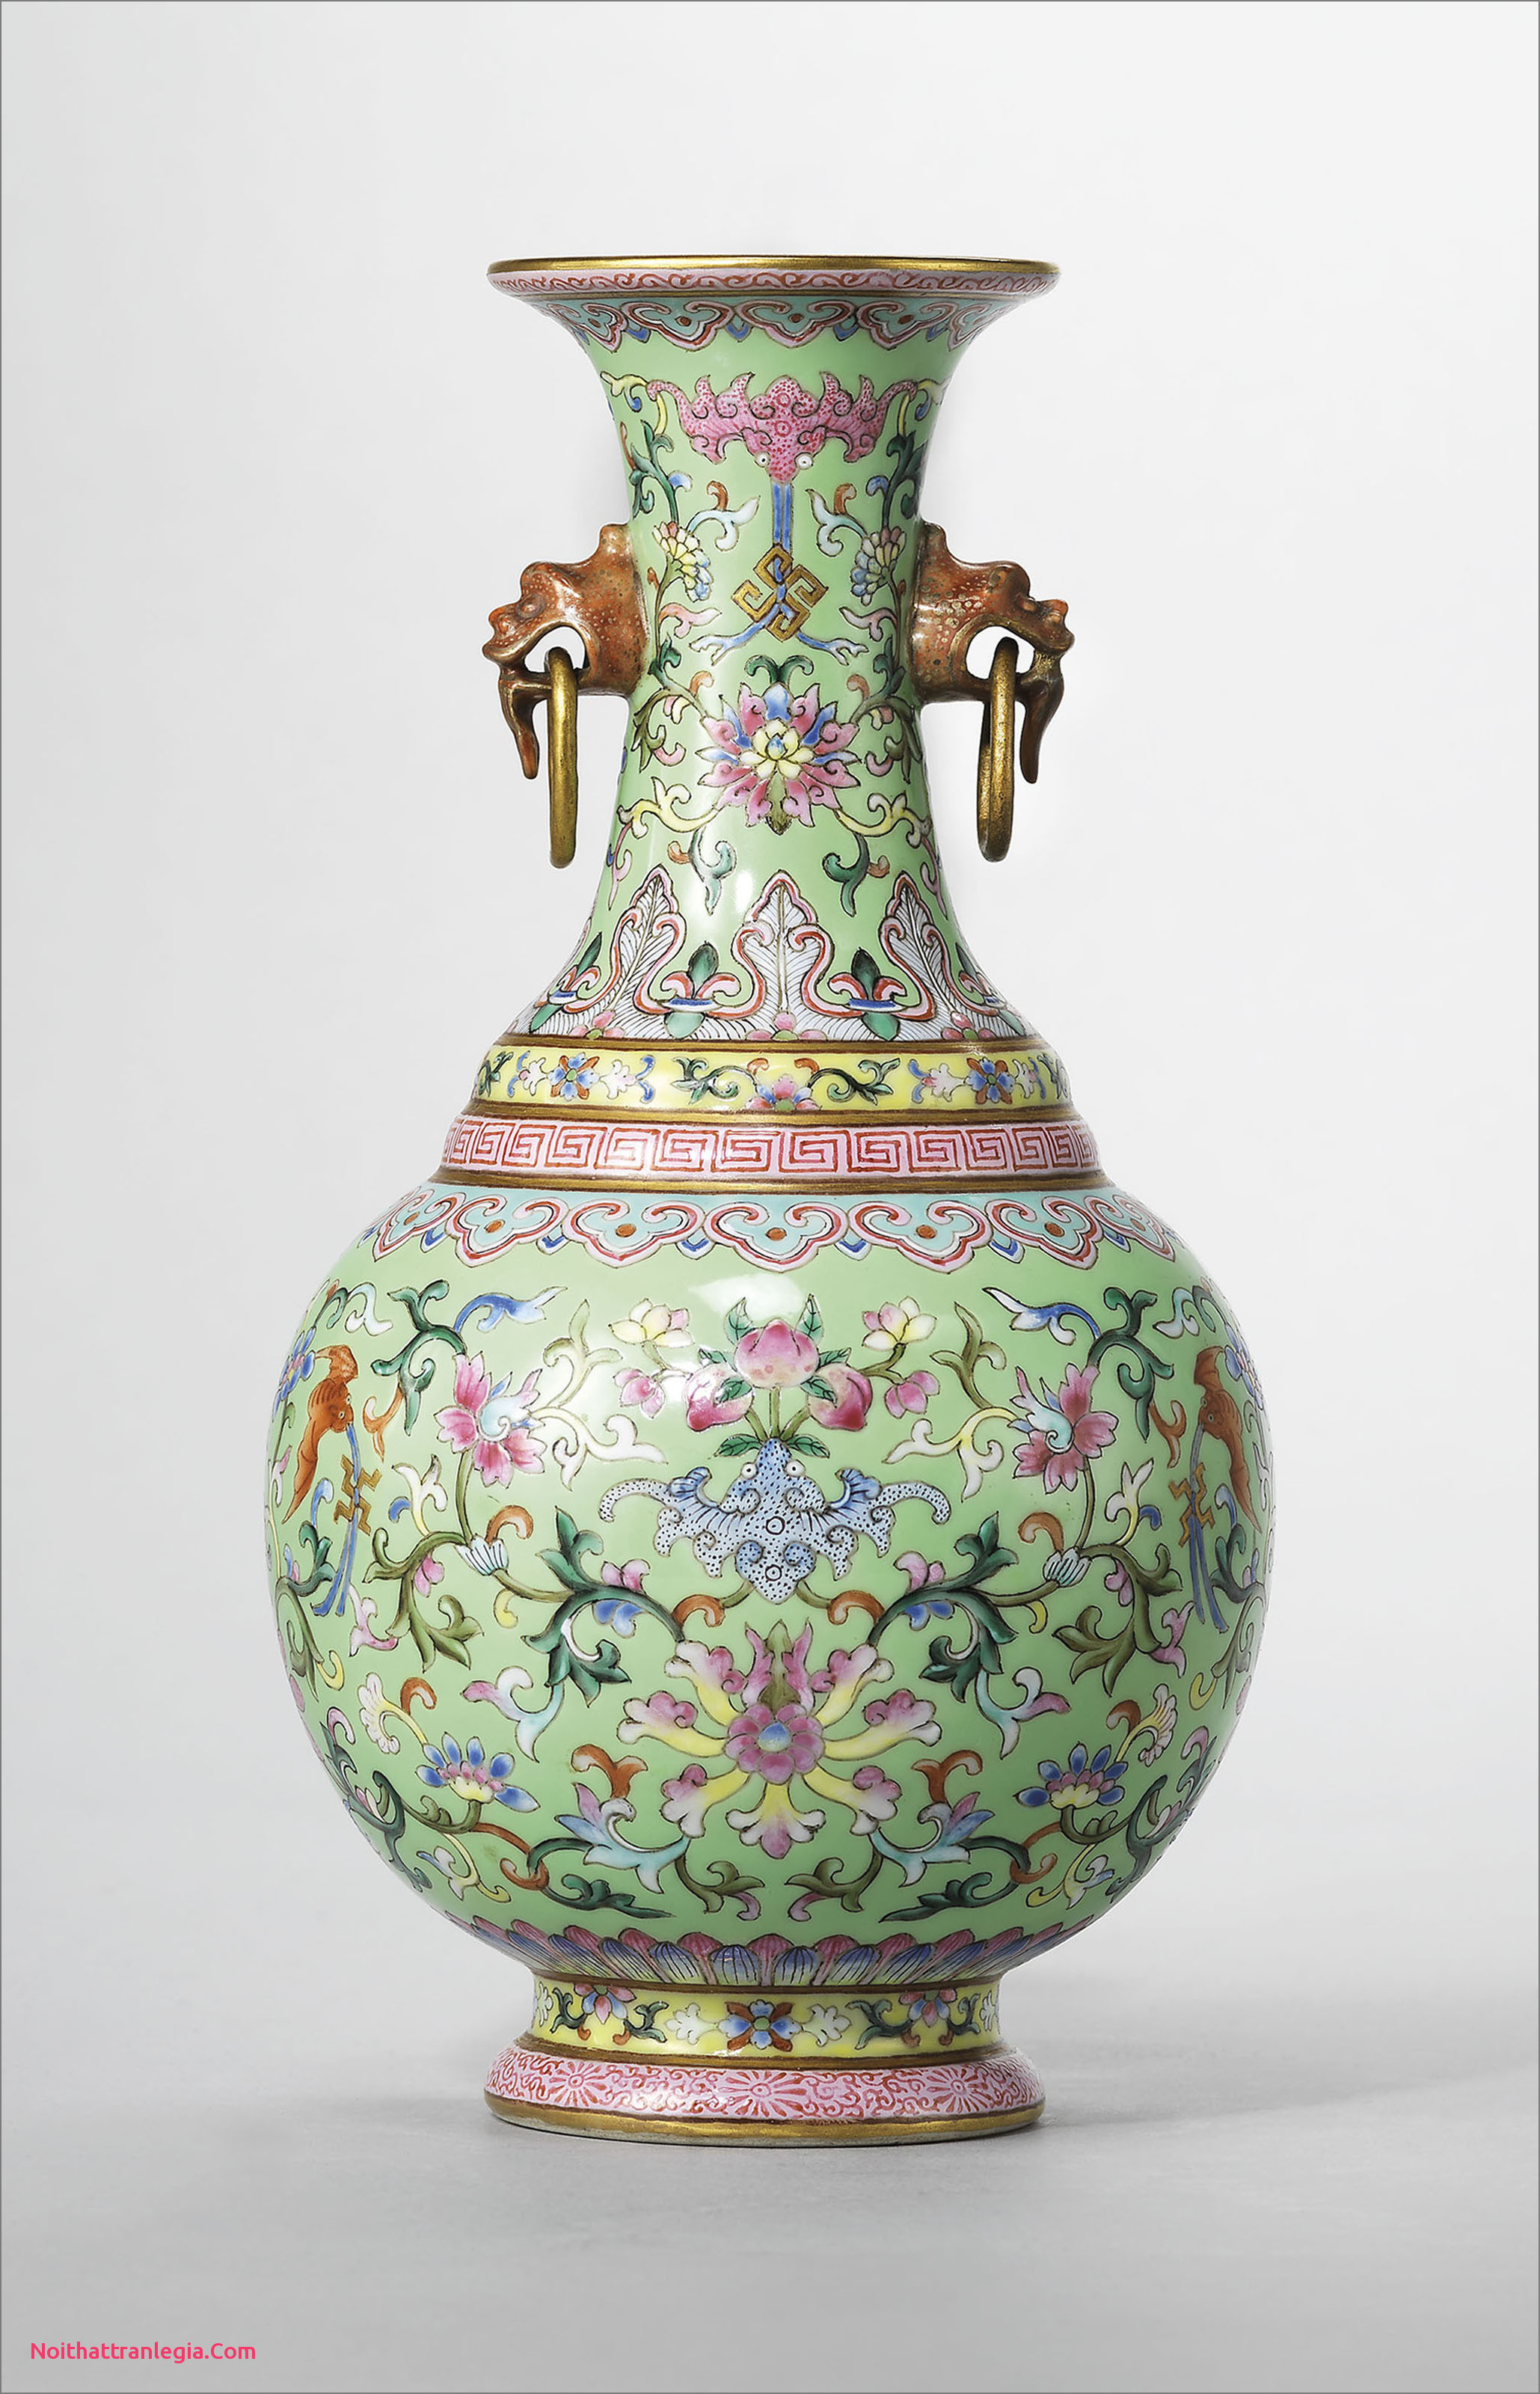 metal urn vase of 20 chinese antique vase noithattranlegia vases design pertaining to a lime green ground famille rose twin handled vase jiaqing six character